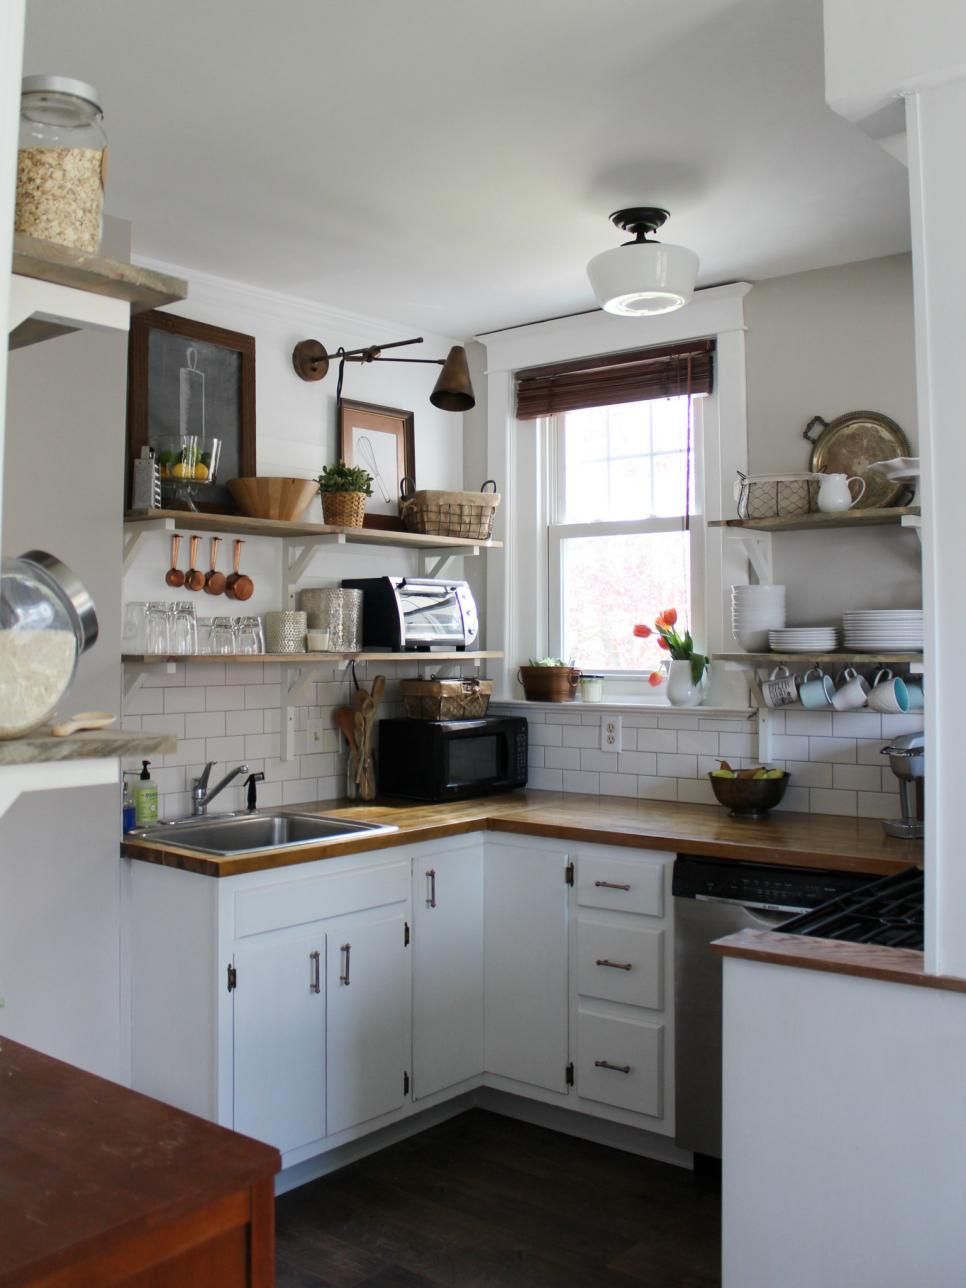 Before-and-After Kitchen Remodels on a Budget | Open shelving ...